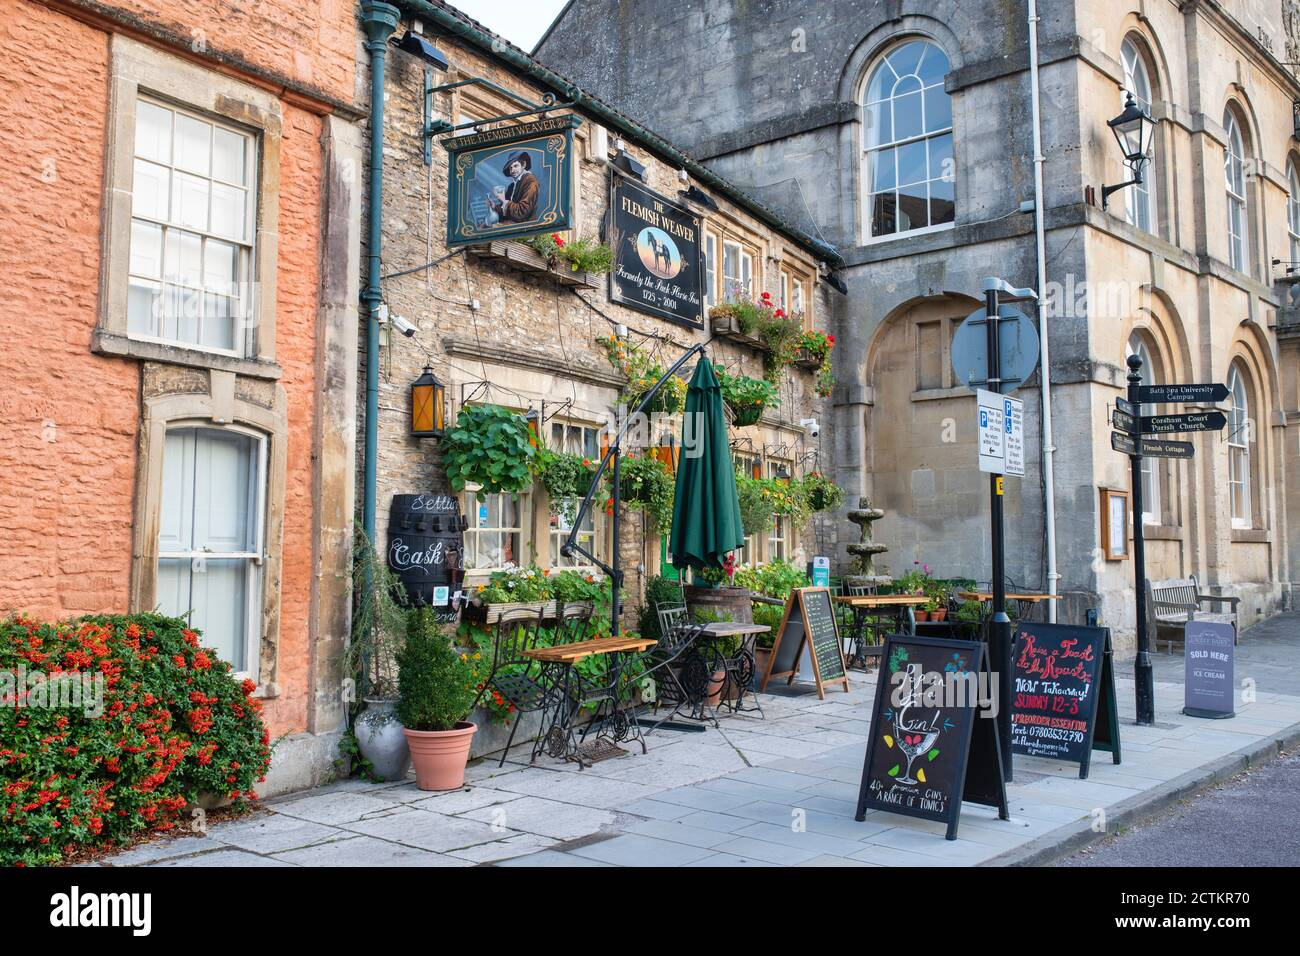 The Flemish Weaver pub along the high street in the early morning. Corsham, Cotswolds, Wiltshire, England Stock Photo